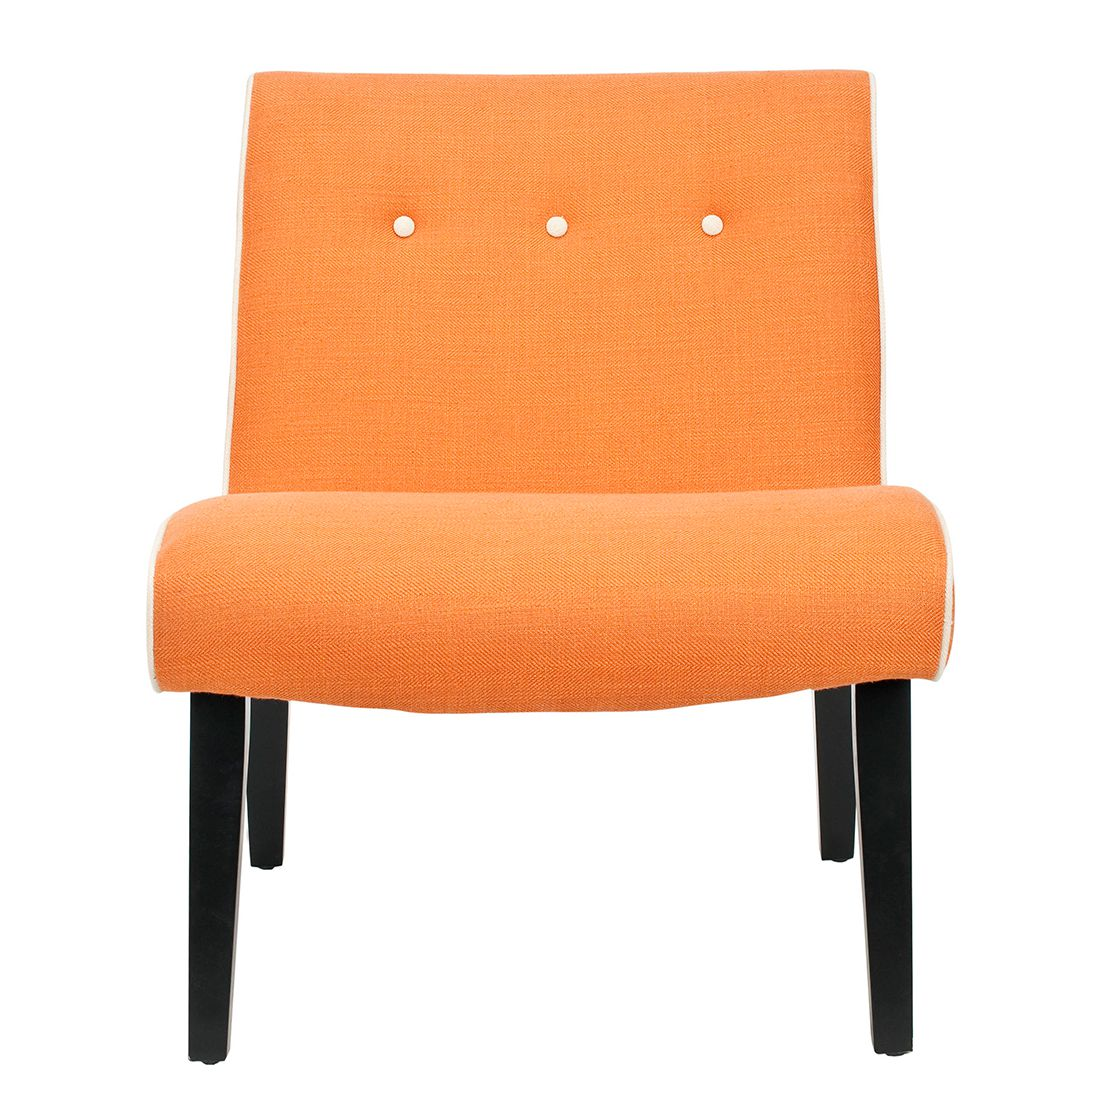 Sessel Mandell - Birke massiv / Webstoff - Orange, Safavieh